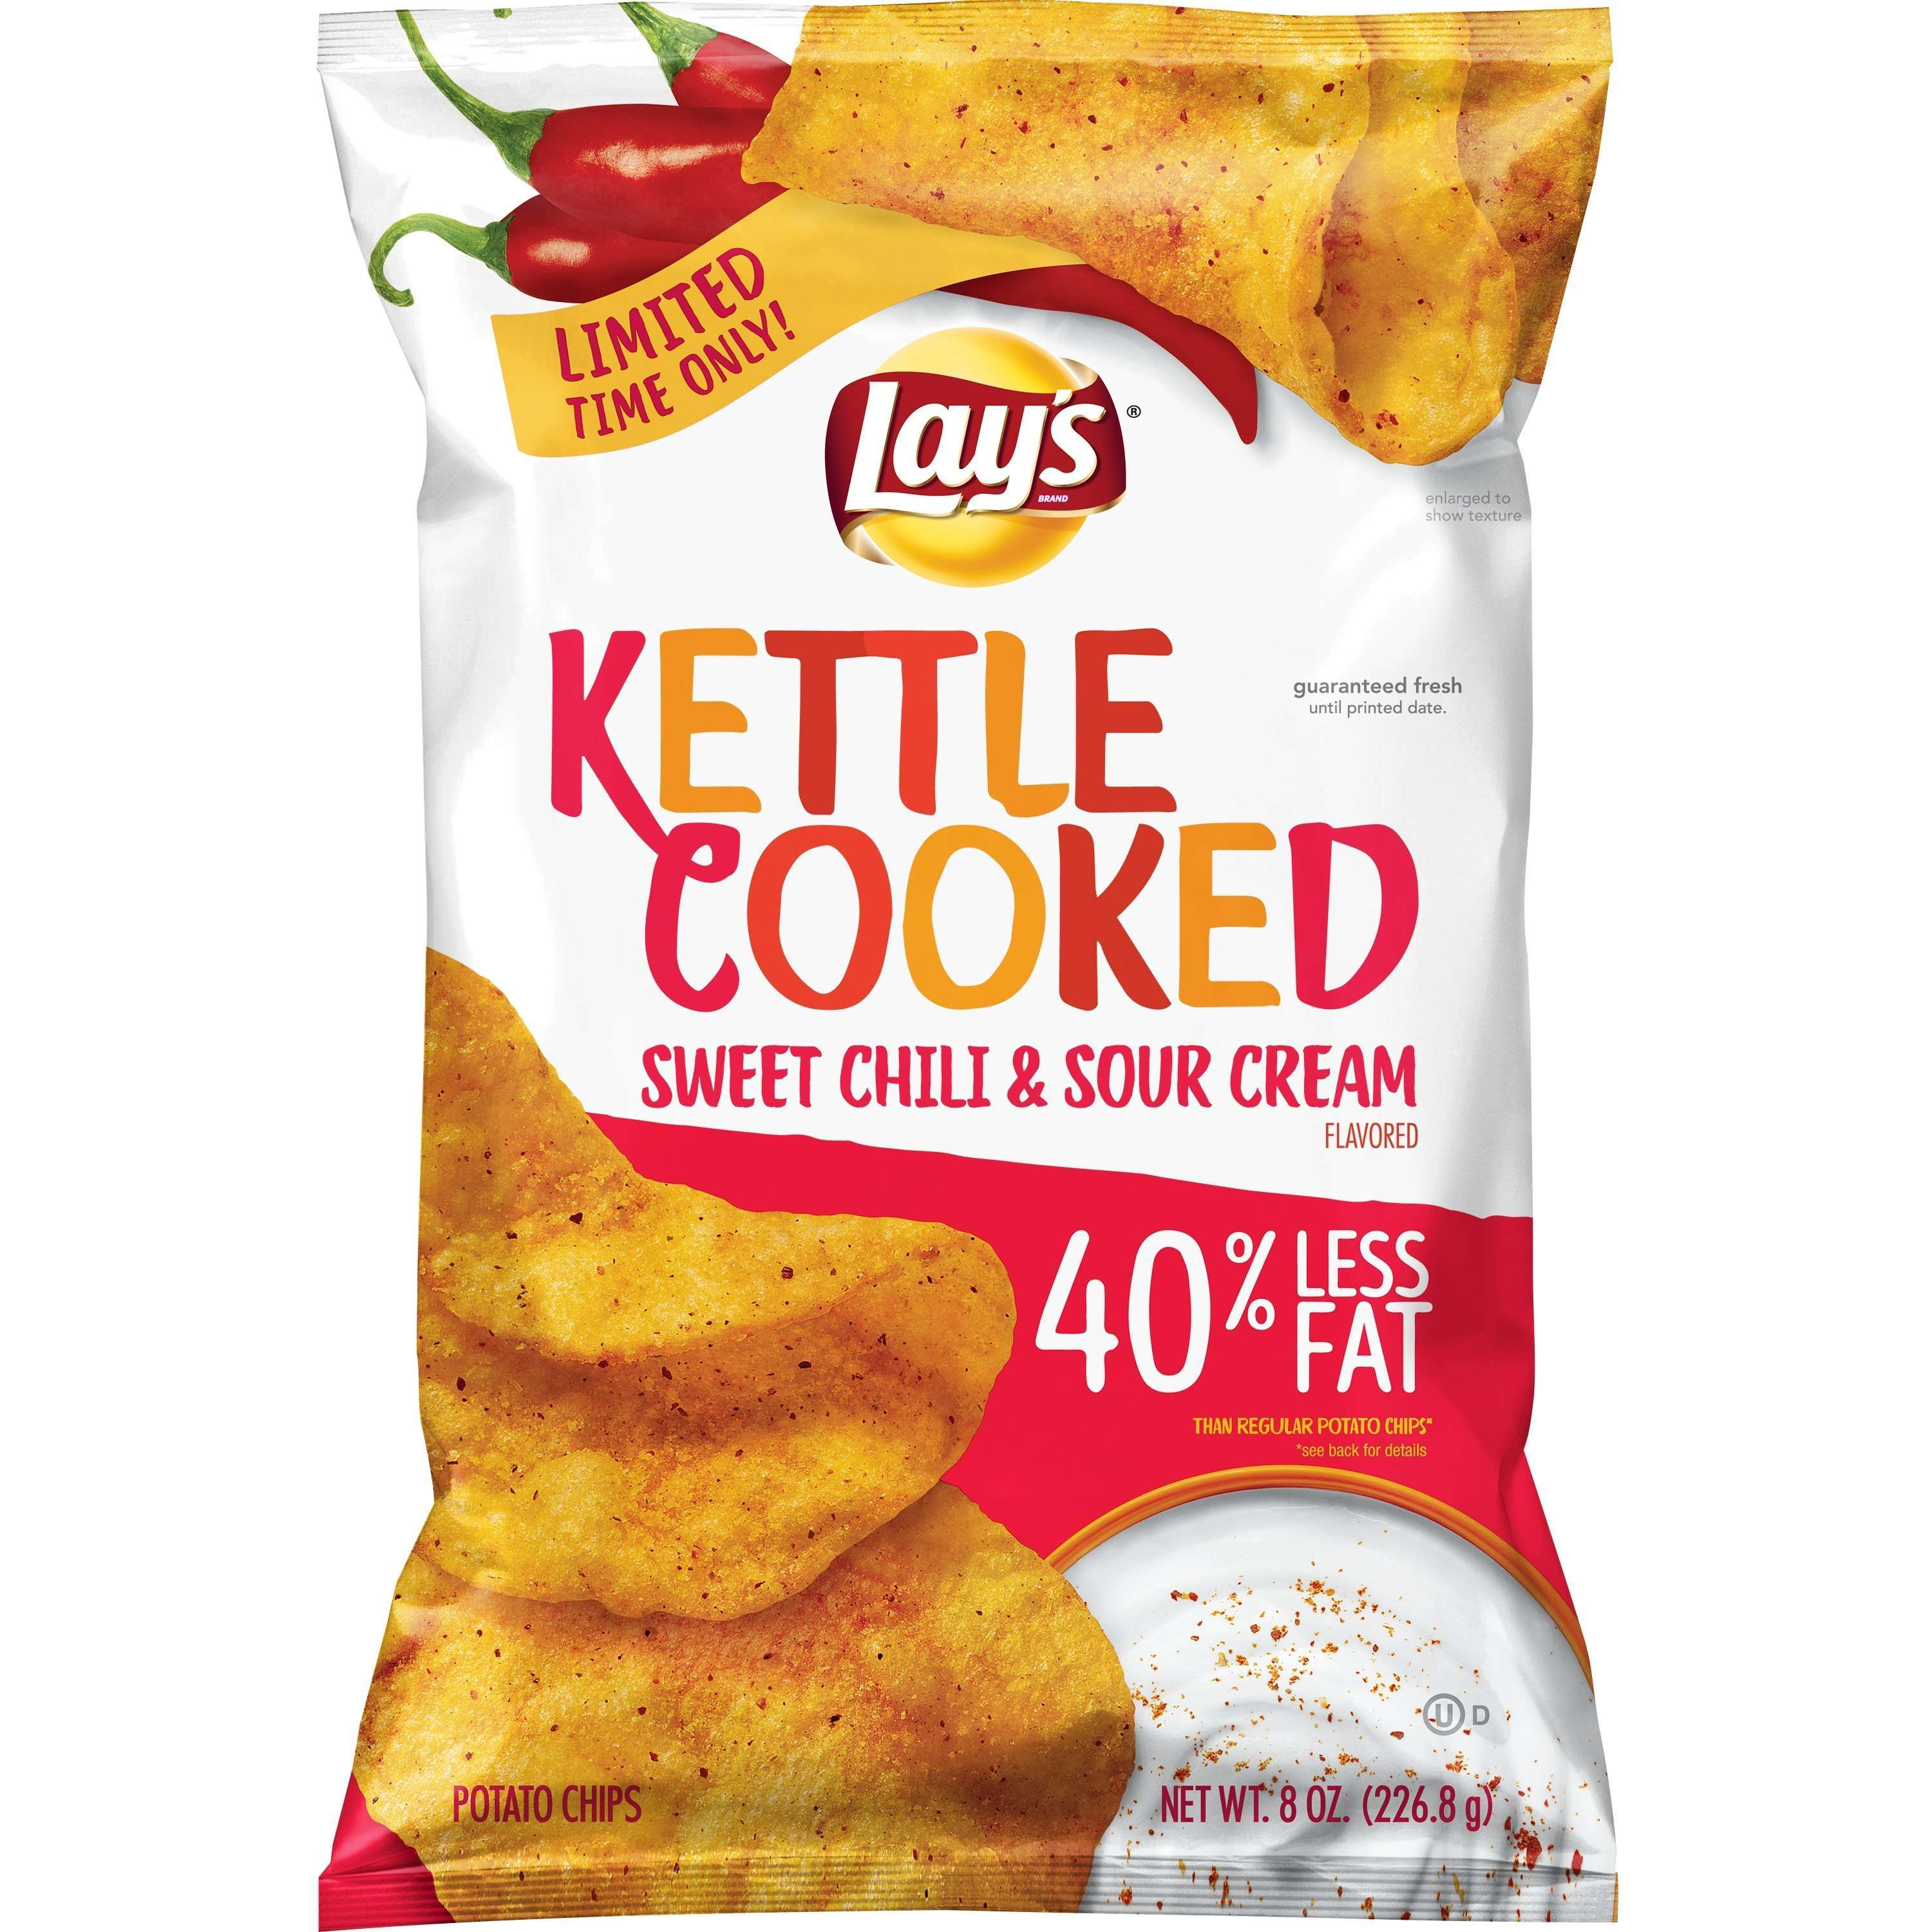 Lay's Kettle Cooked Potato Chips, Sweet Chili & Sour Cream, 8 oz Bag